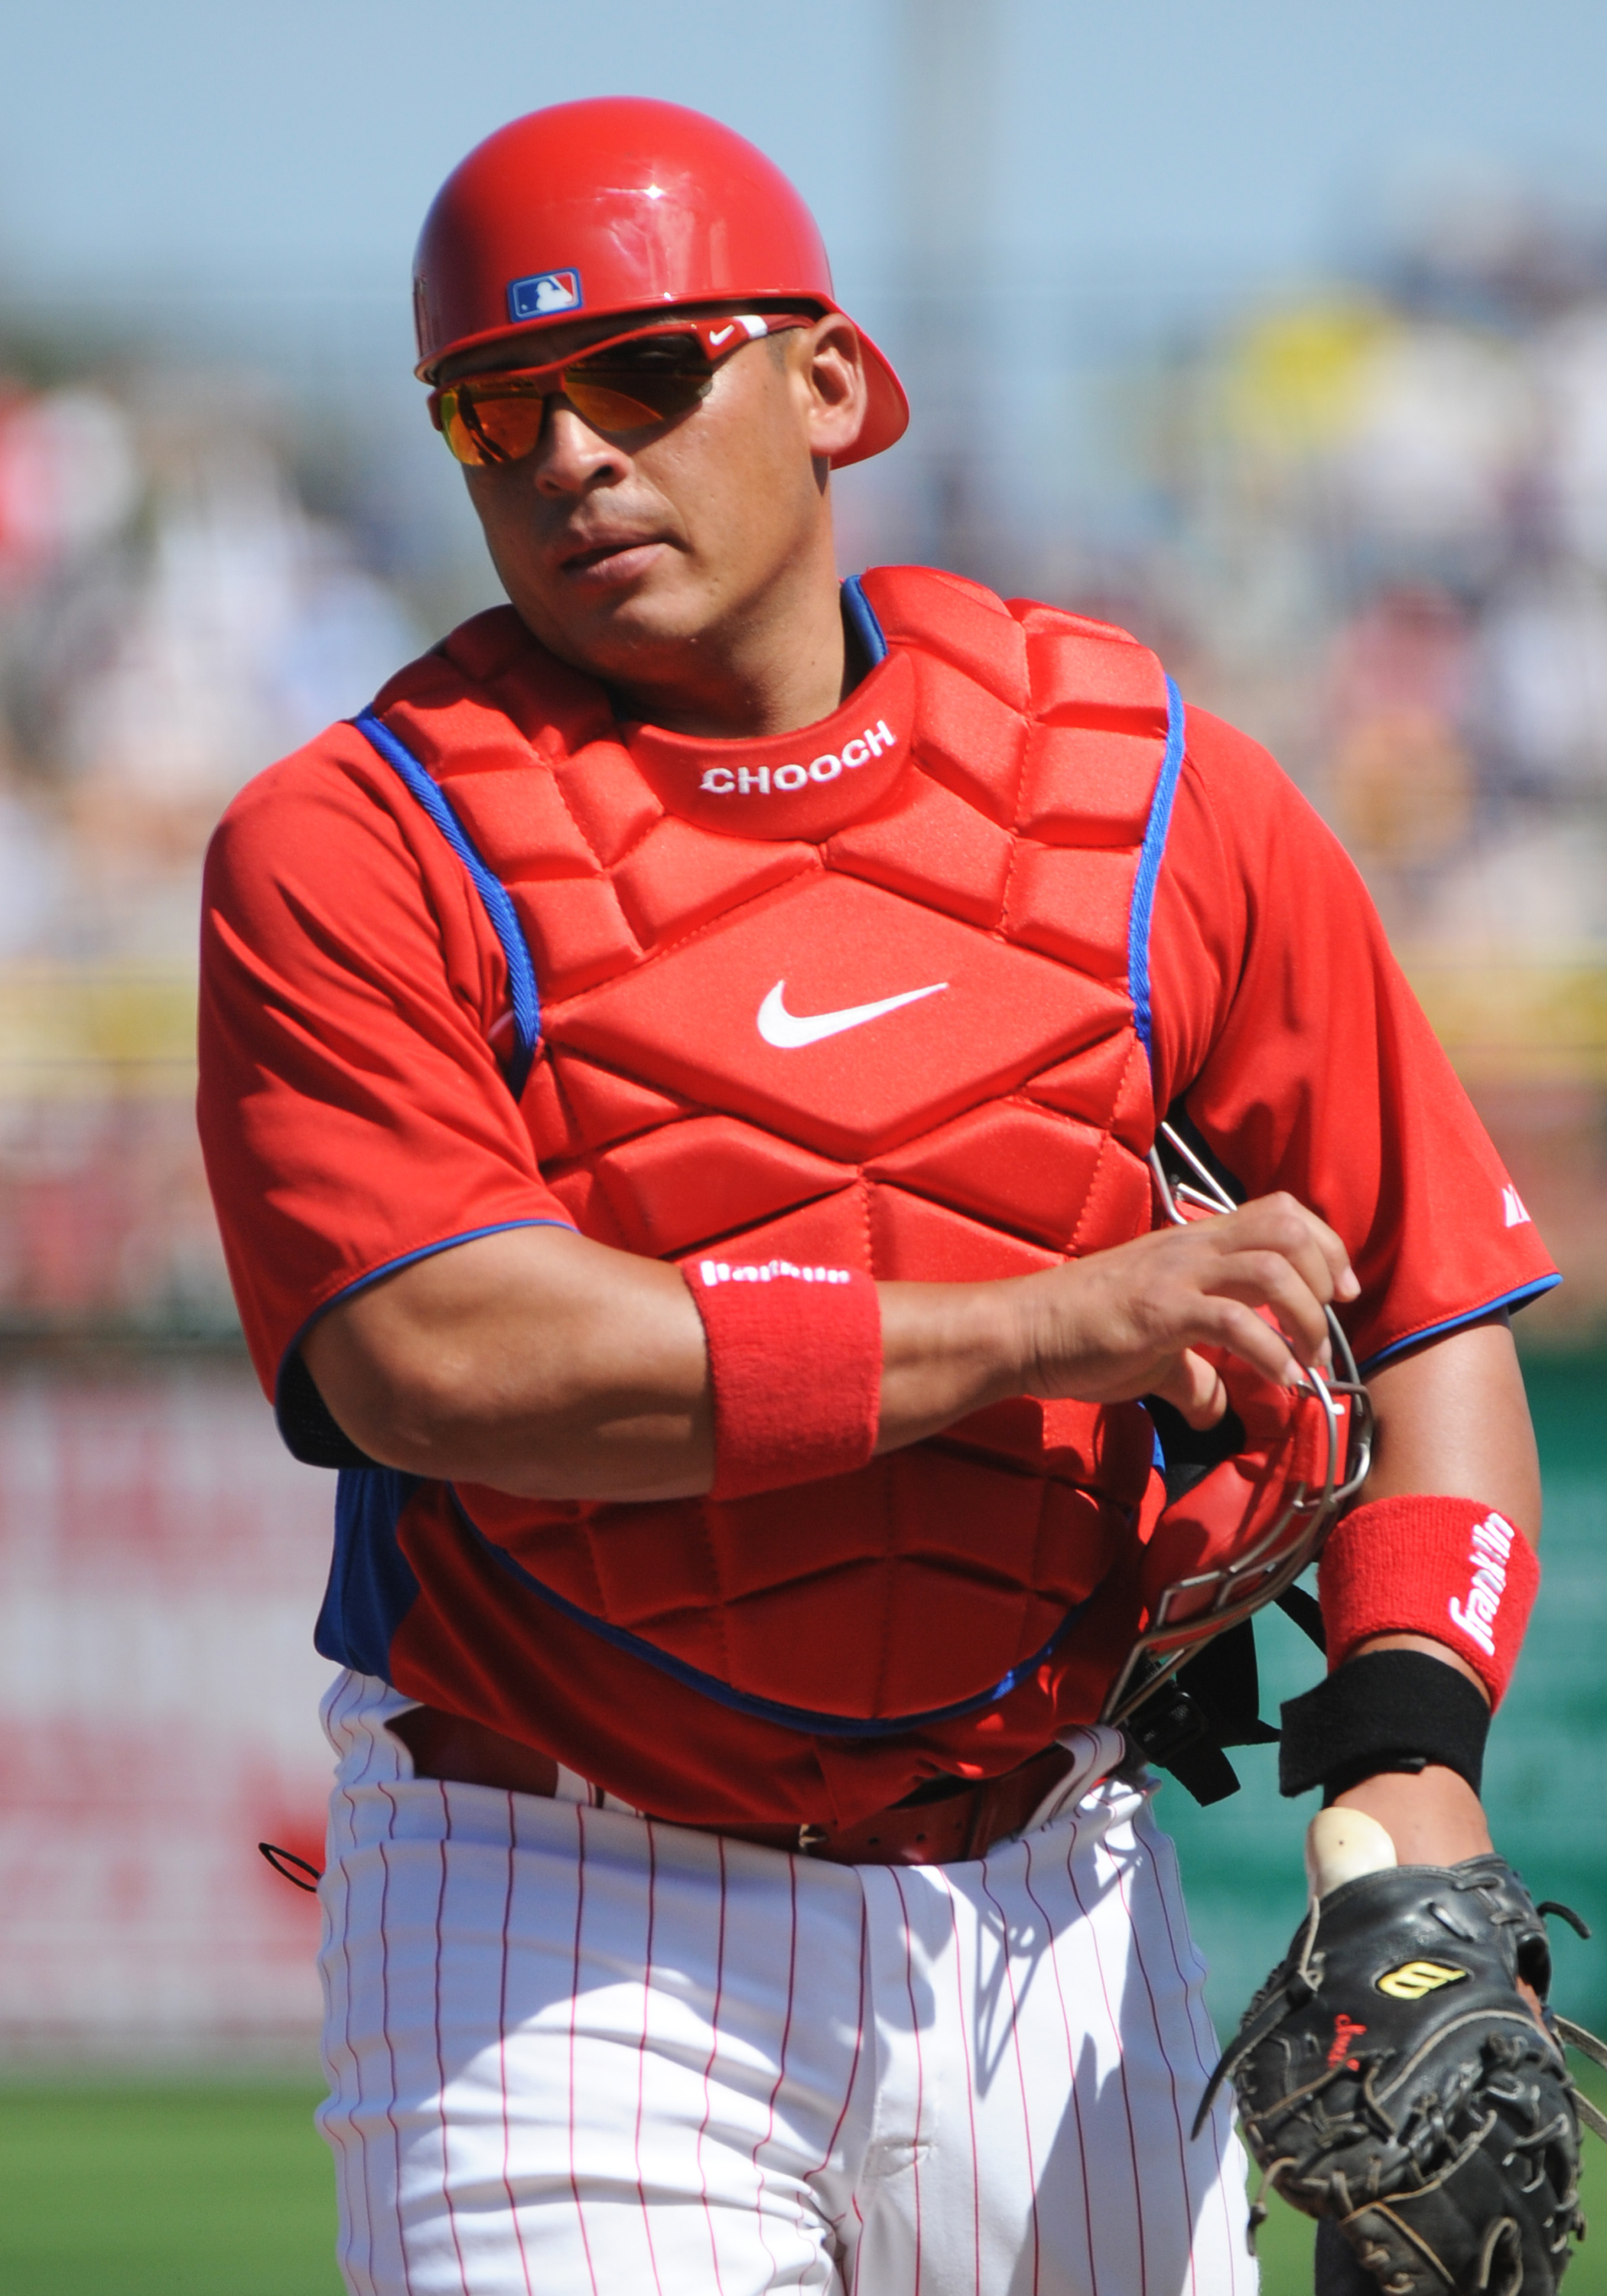 CLEARWATER, FL - FEBRUARY 27:  Catcher Carlos Ruiz #51 of the Philadelphia Phillies sets for play against the New York Yankees February 27, 2011 at Bright House Field in Clearwater, Florida.  (Photo by Al Messerschmidt/Getty Images)